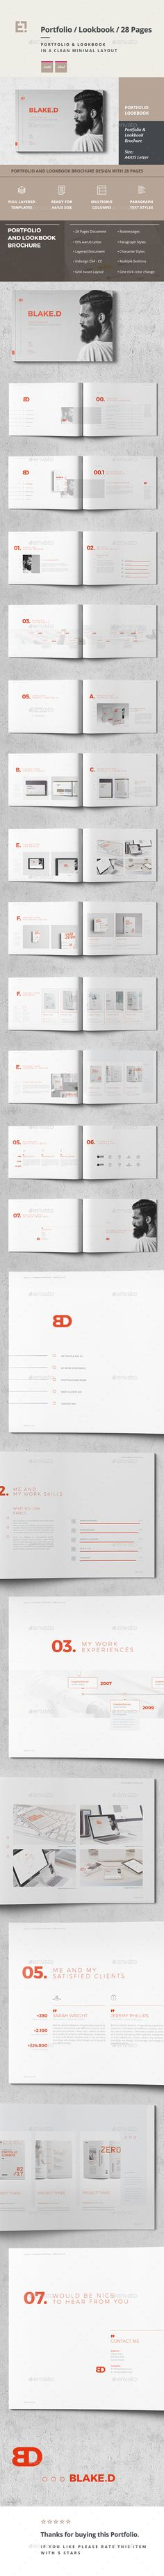 Portfolio - Portfolio Brochure Template 	InDesign INDD - 28 Pages, A4 & US Letter Size